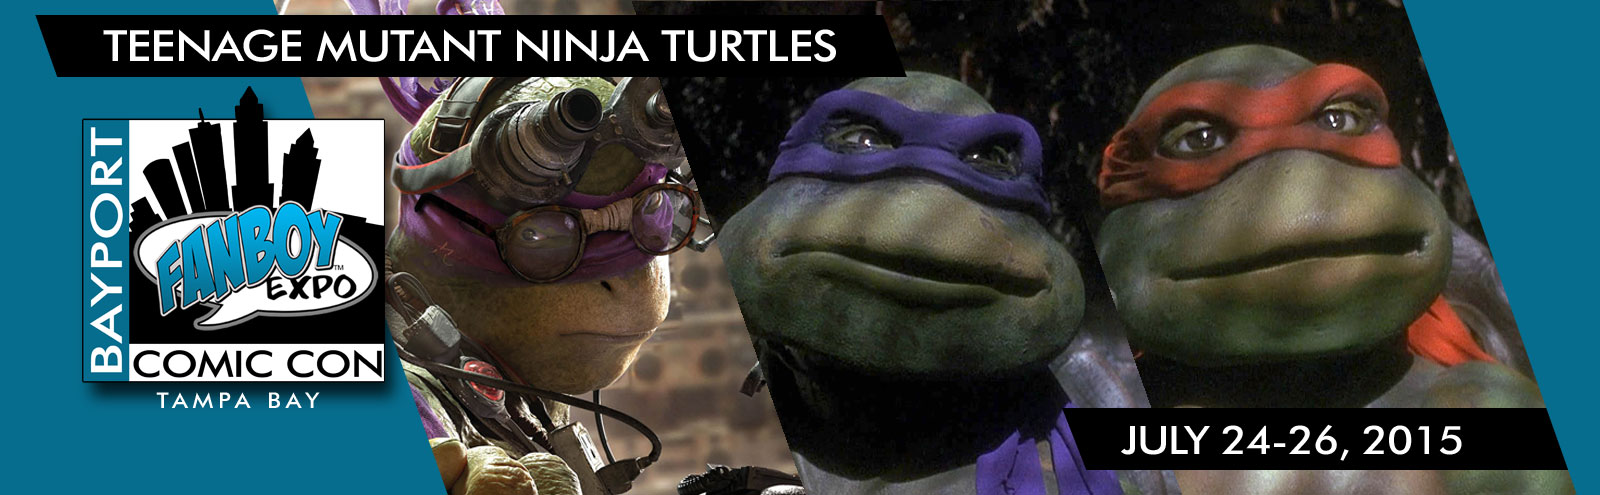 featured-tmnt-2